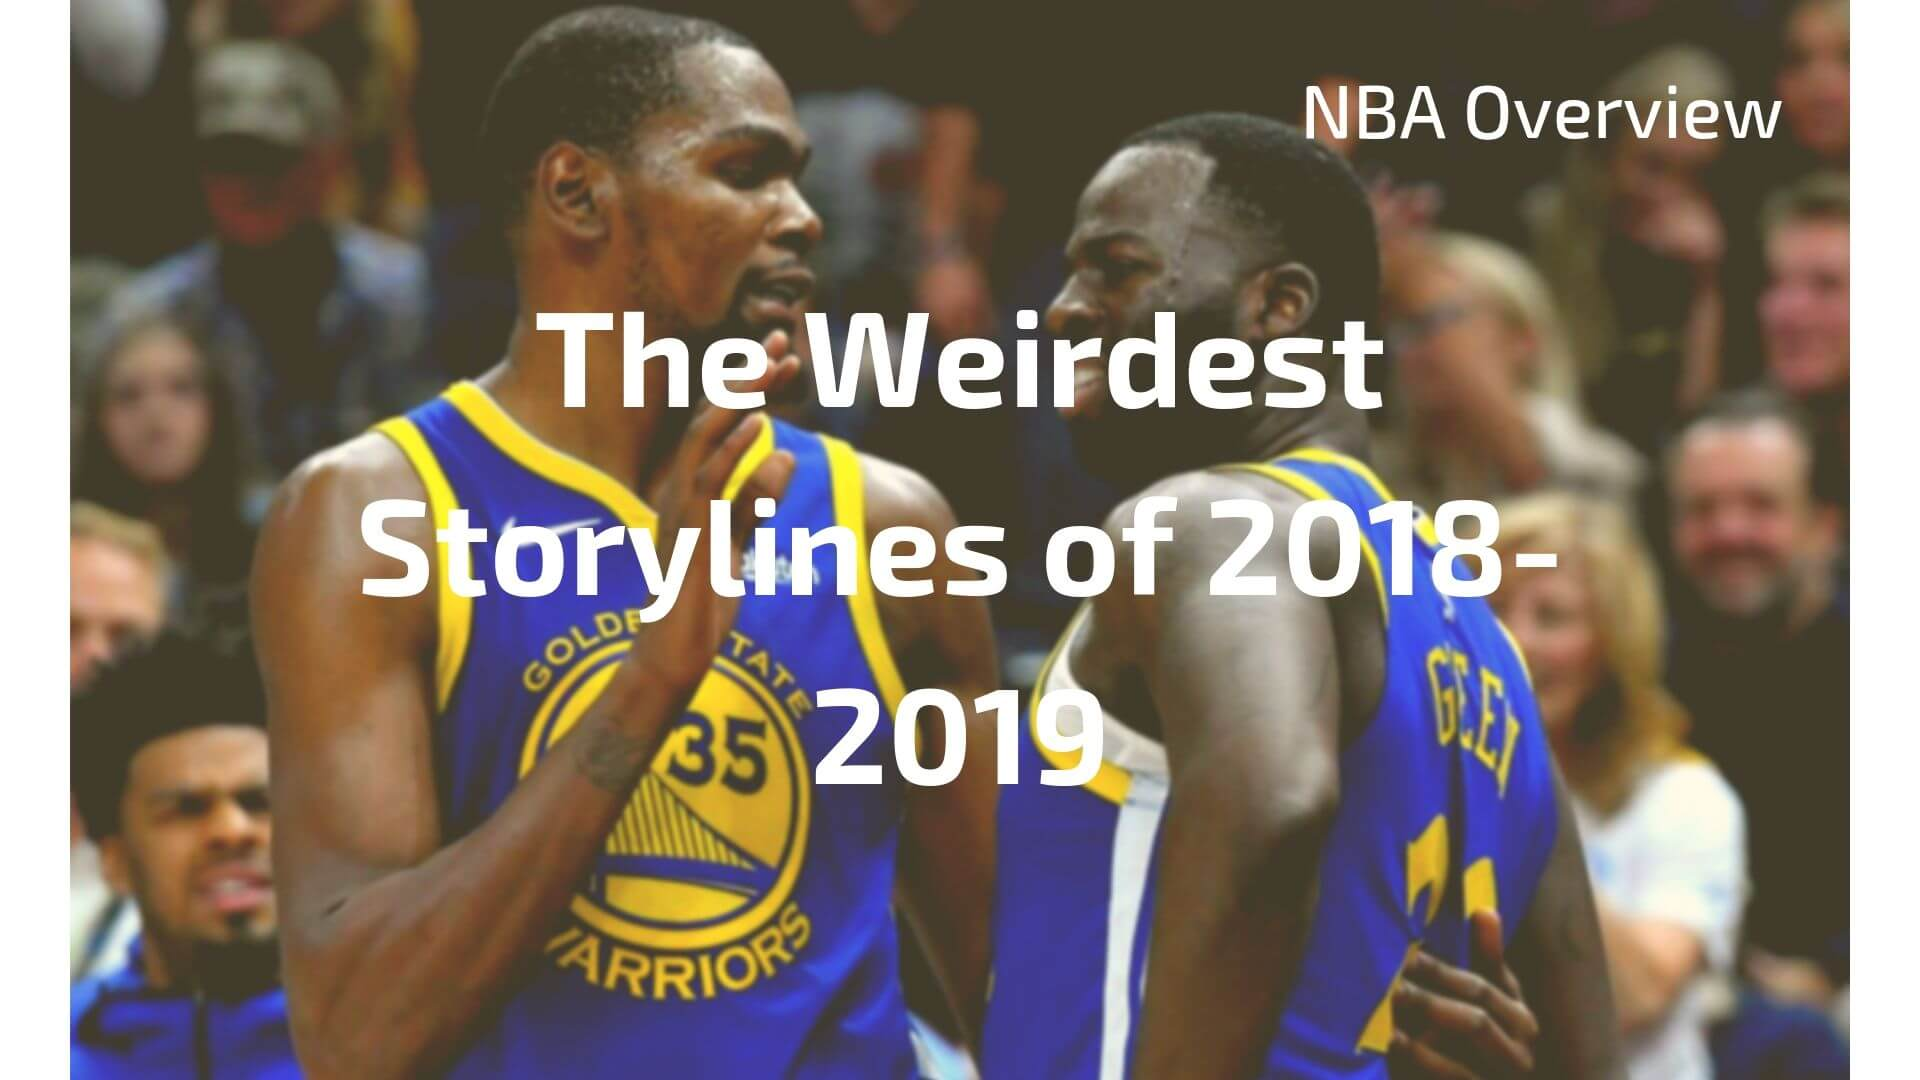 The weirdest NBA storylines of 2018-2019 are all right here!